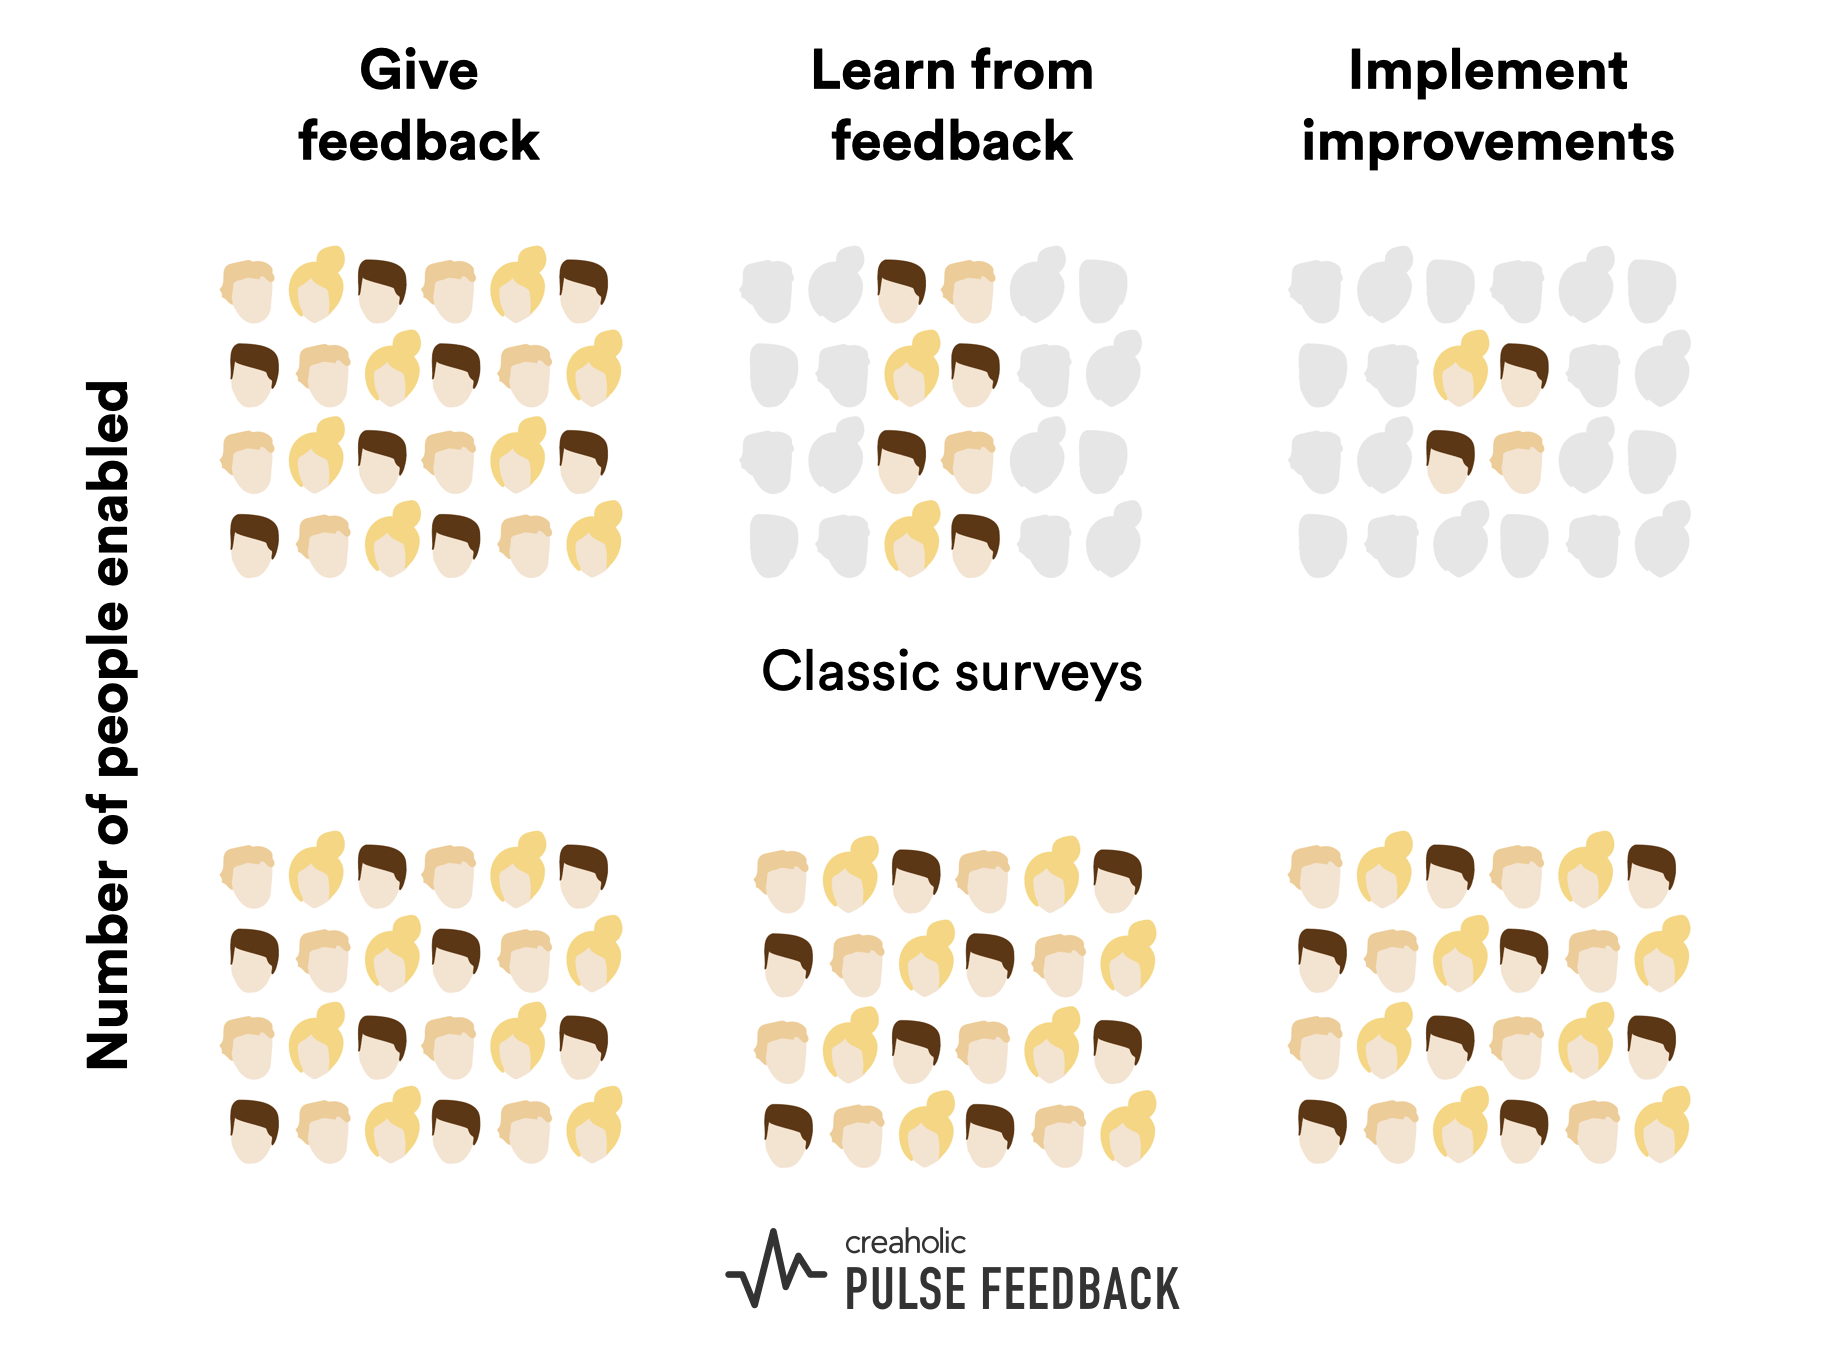 Graphic showing the comparison of a classic employee survey and Pulse. With Pulse, everyone can learn from the feedback and implement improvements.